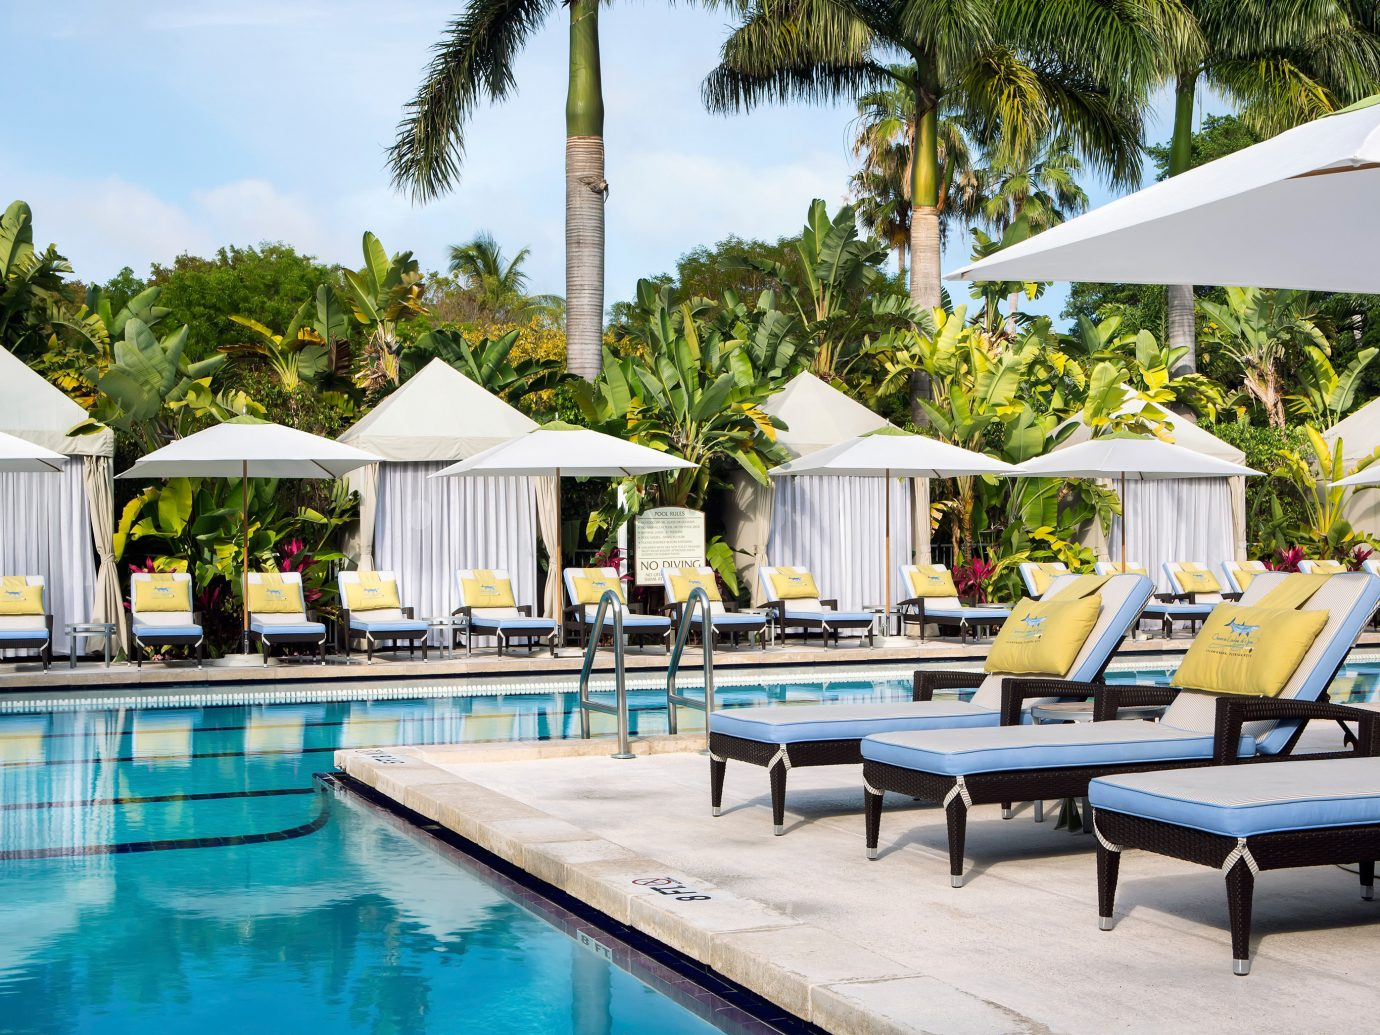 Hotels Island Lodge Lounge Patio Pool Trip Ideas Tropical tree outdoor table leisure chair swimming pool Resort estate Villa caribbean Deck swimming several